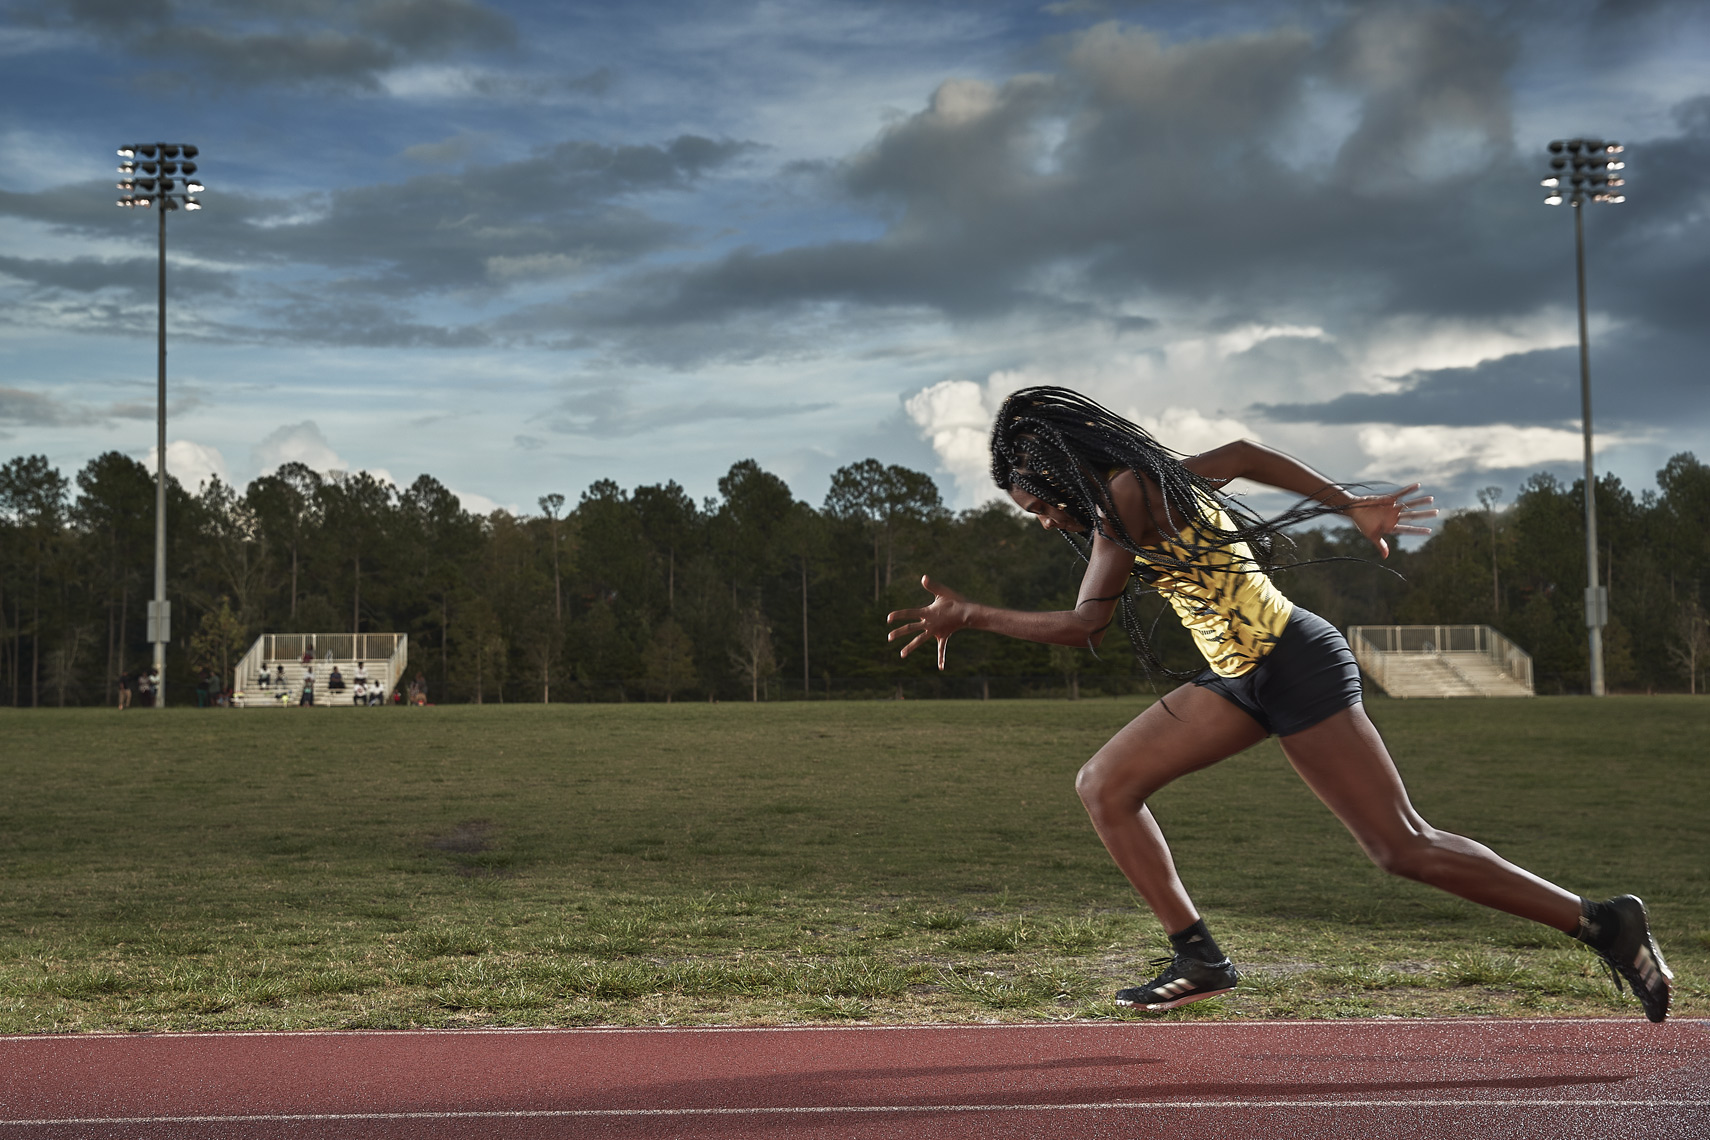 Tamari Davis | Fastest 14yr old in the world | Track and field